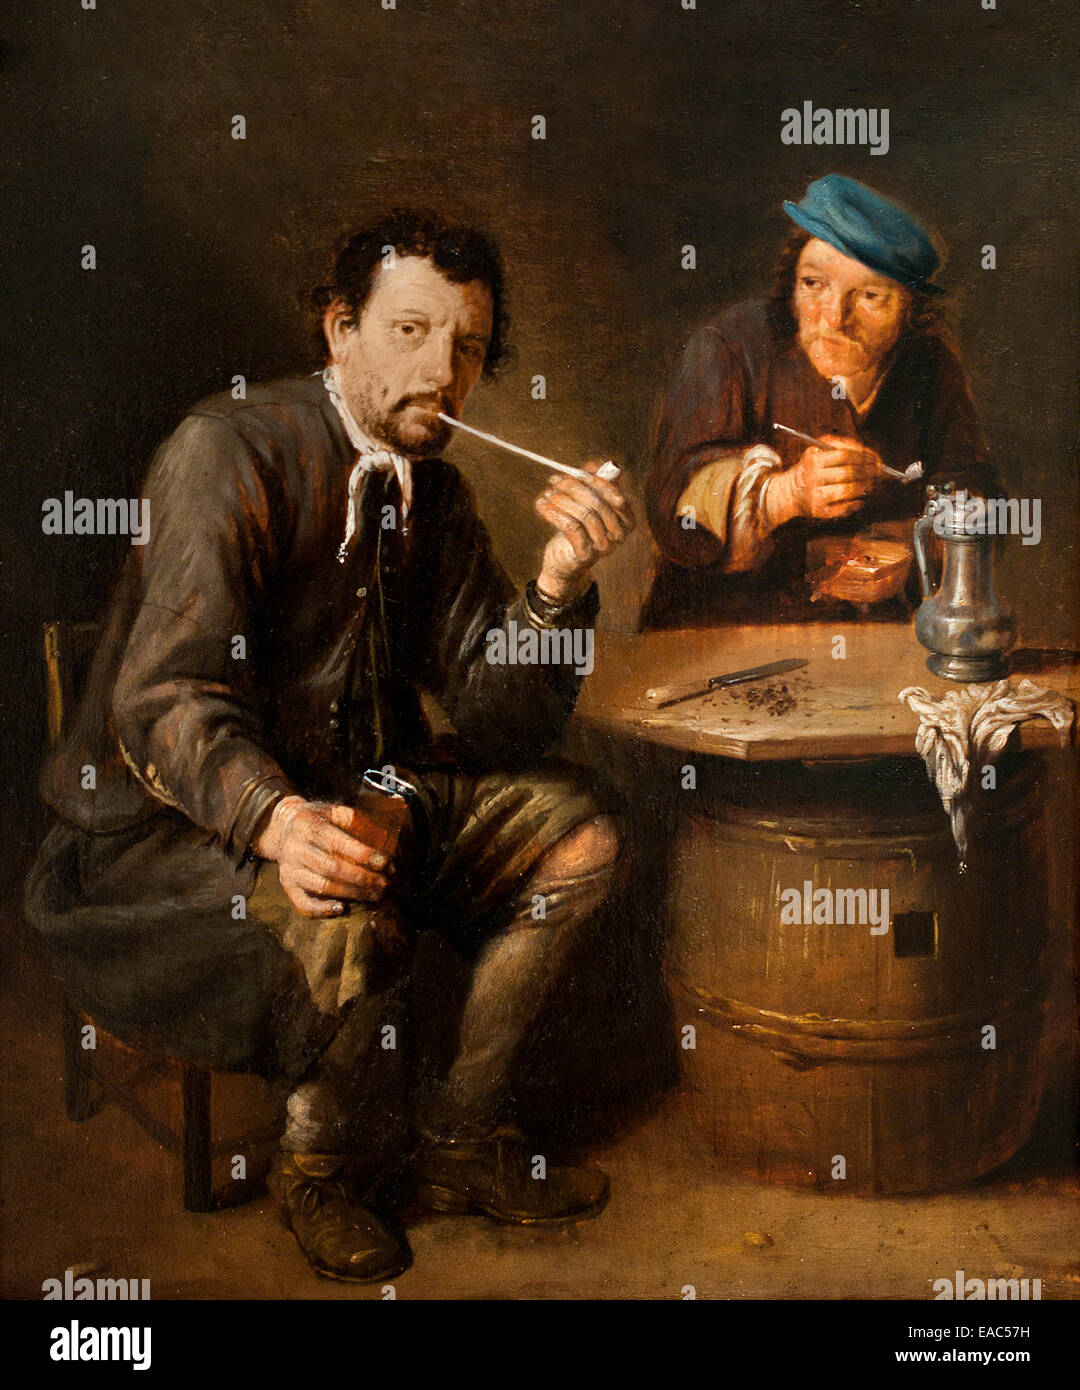 Deux fumer dans un cabaret - Two smoking in a tavern by  Mathijs Wulfraet 1648 – 1727 Dutch Golden Age painter - Stock Image